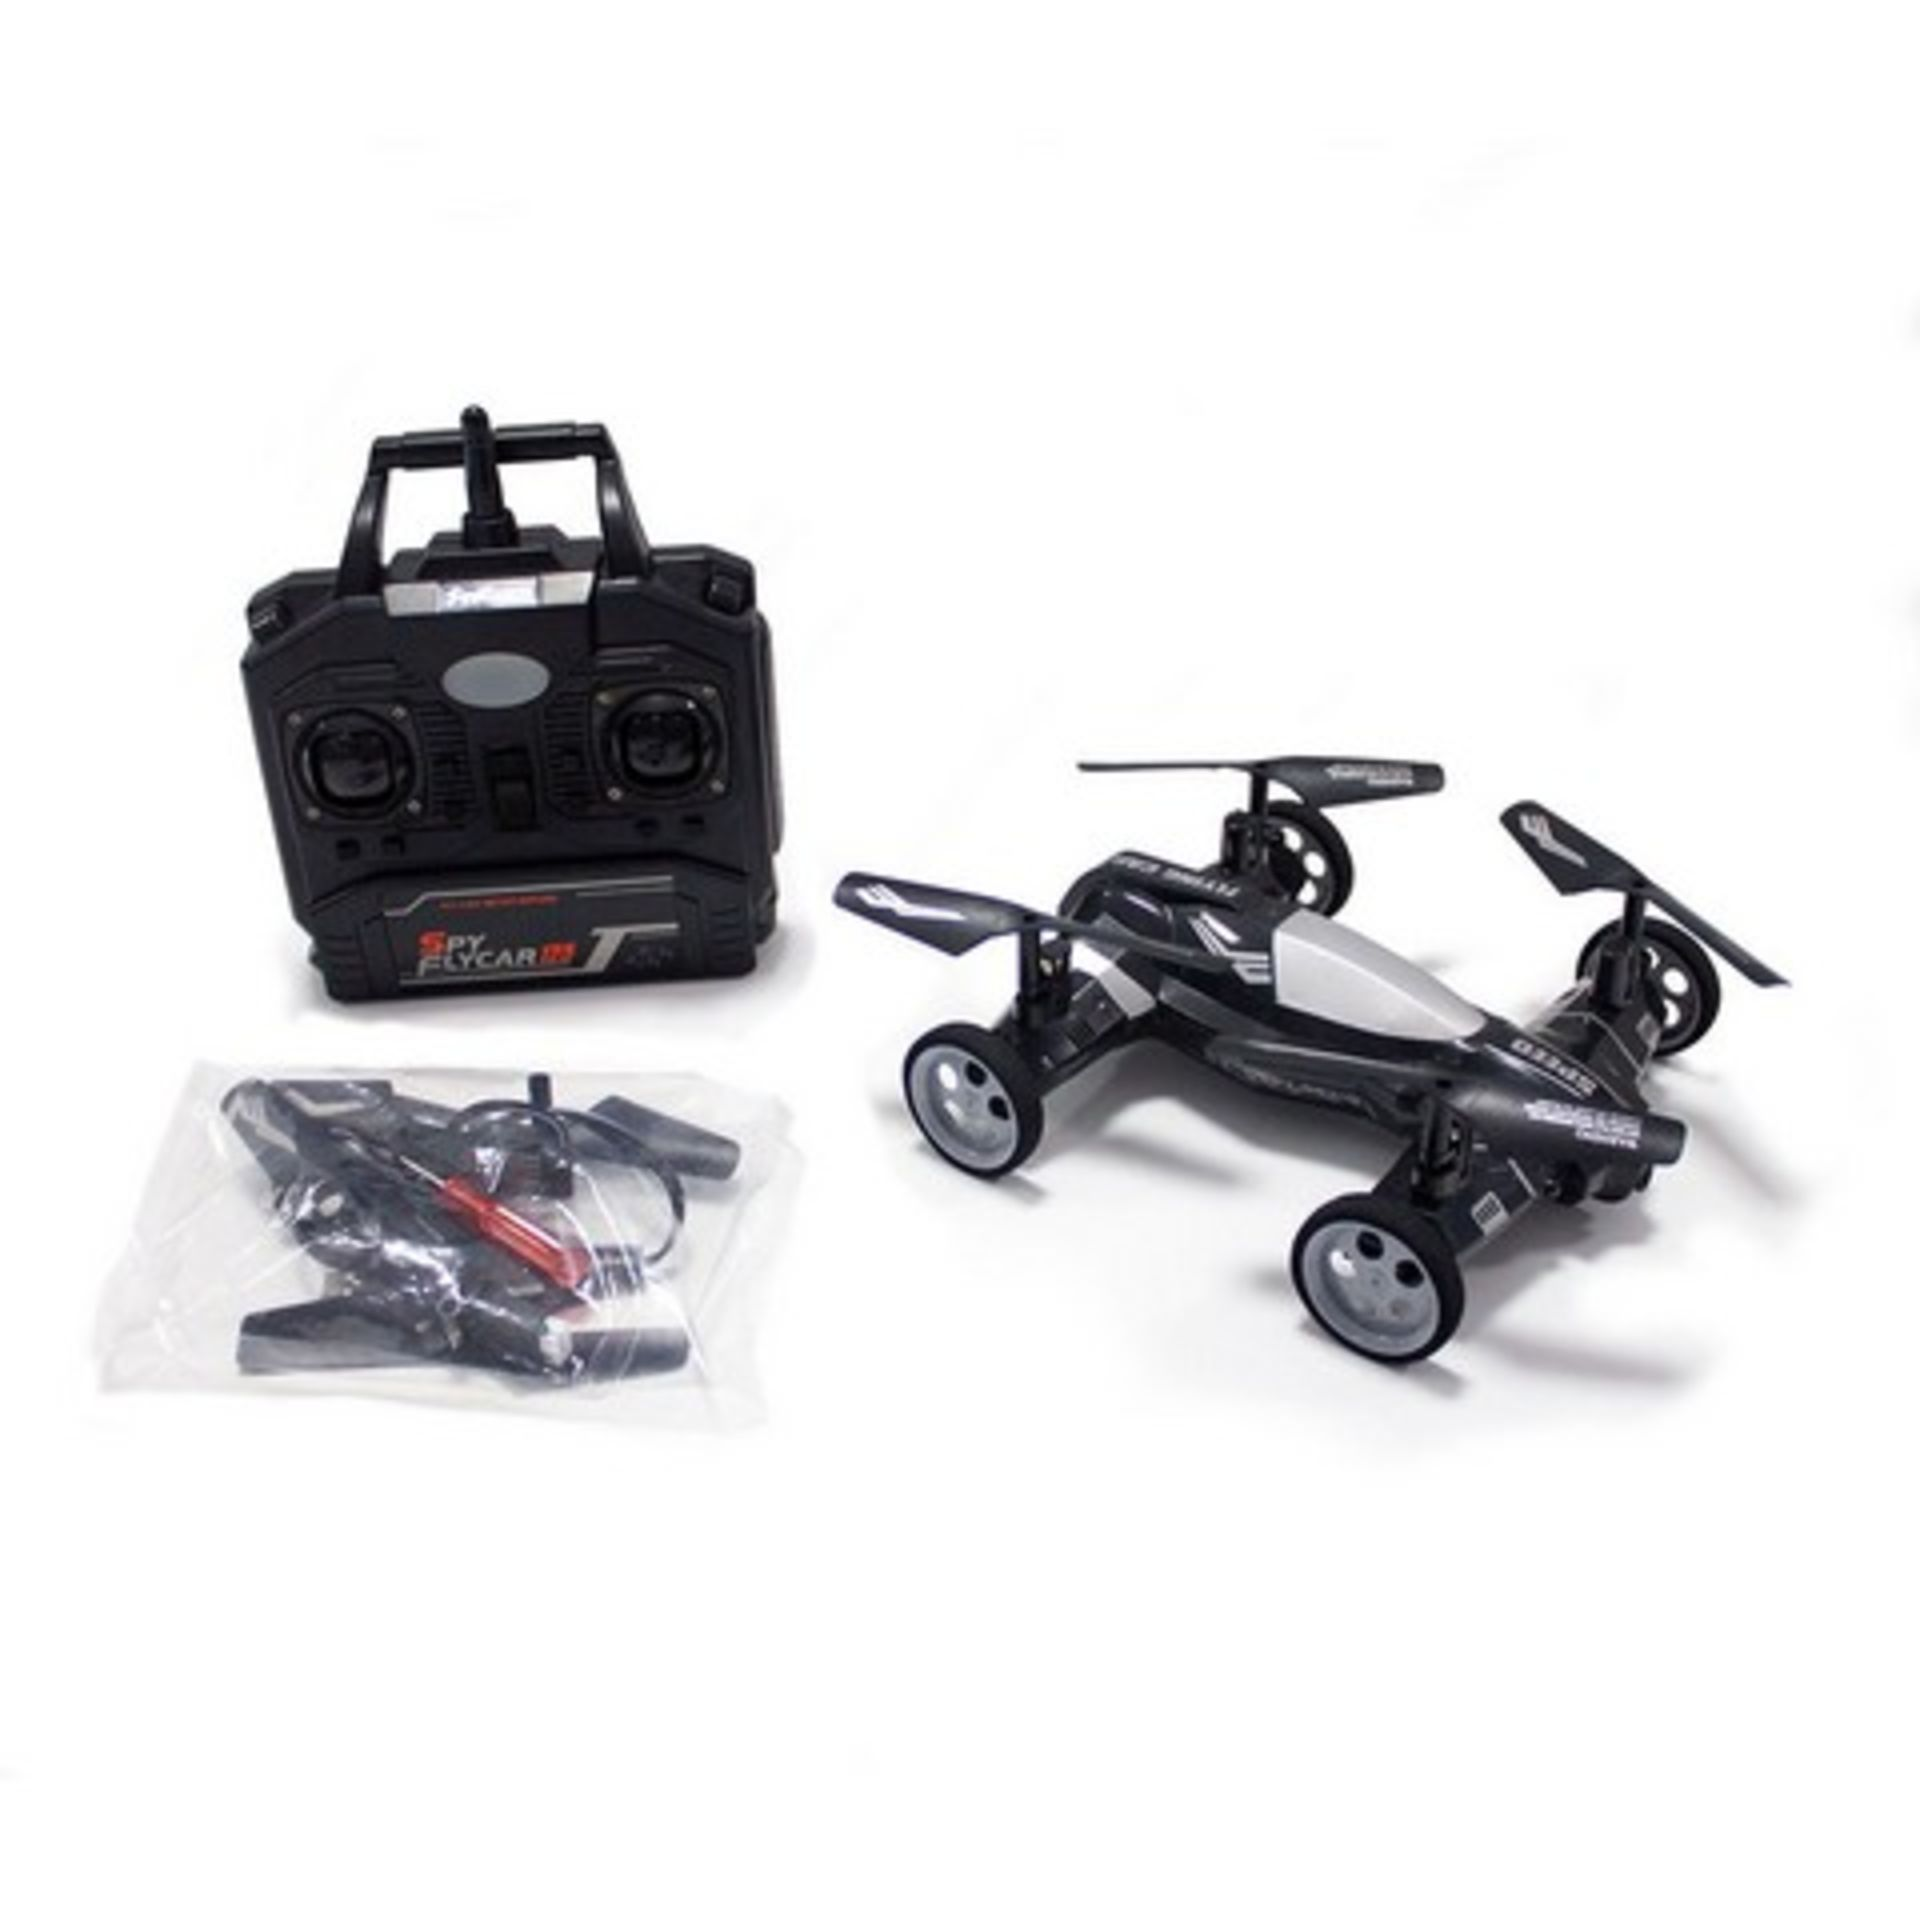 Lot 51818 - V Brand New Radio Control Quad-Copter Orbit Moon Buggy - 720P HD Camera - 4GB Micro SD Card Included